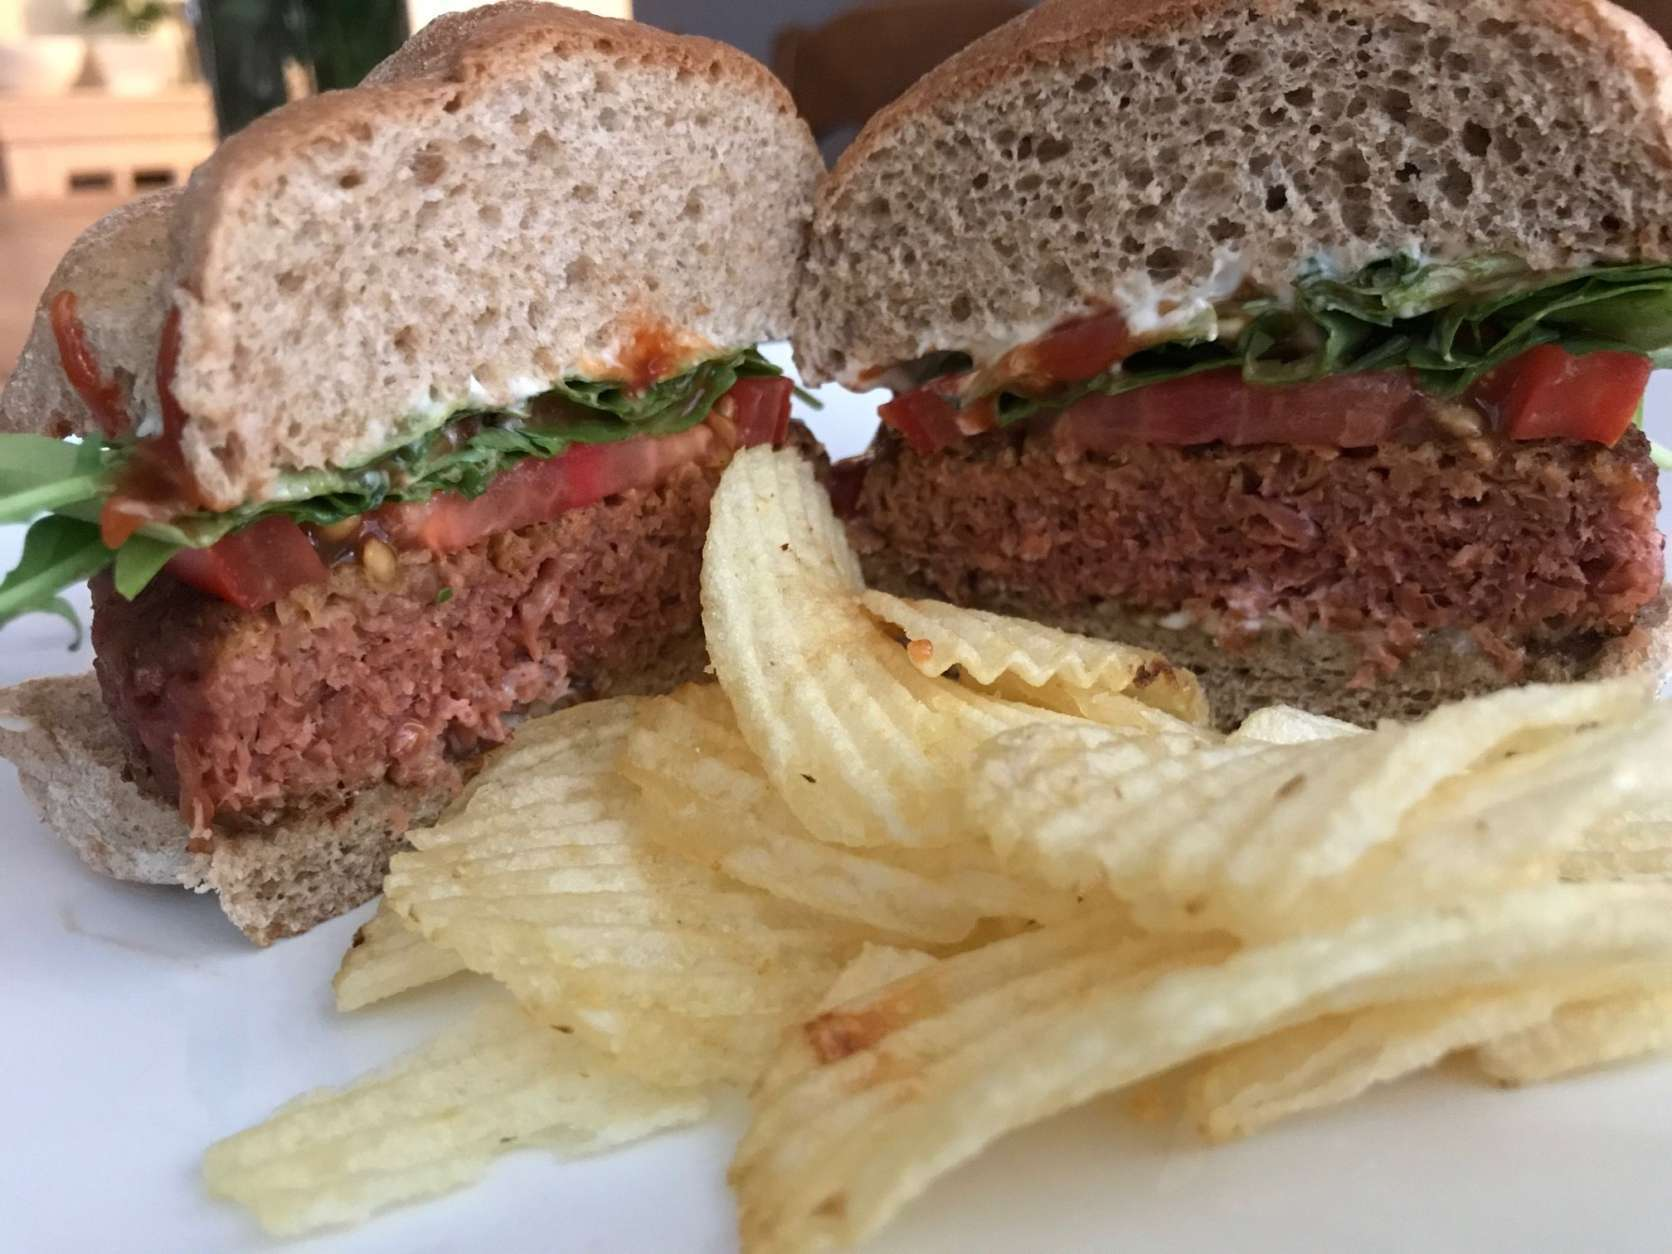 The Beyond Burger is not a veggie burger. There are no visible greens, grains or carrots bound by egg and breadcrumbs. Instead, it's made from protein that's been extracted from legumes and pulses, then heated and cooled to achieve the desired meat-like consistency. (WTOP/Rachel Nania)